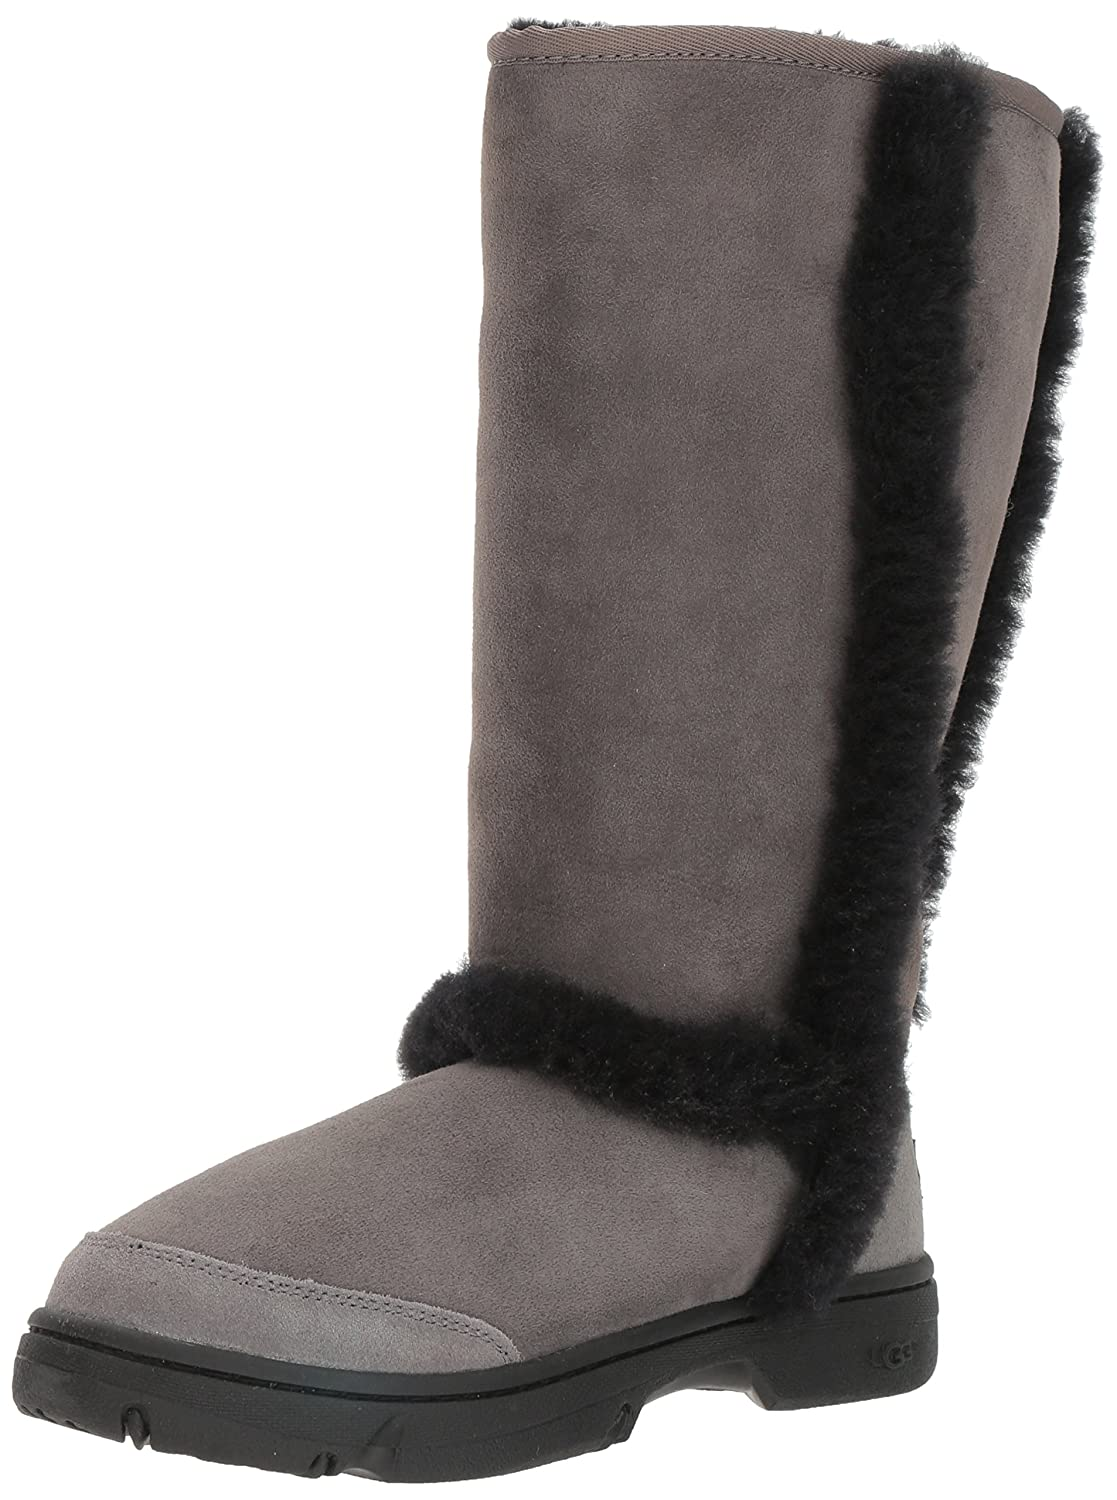 ed9fb0f4672 UGG Women's Sunburst Tall Fashion Boot